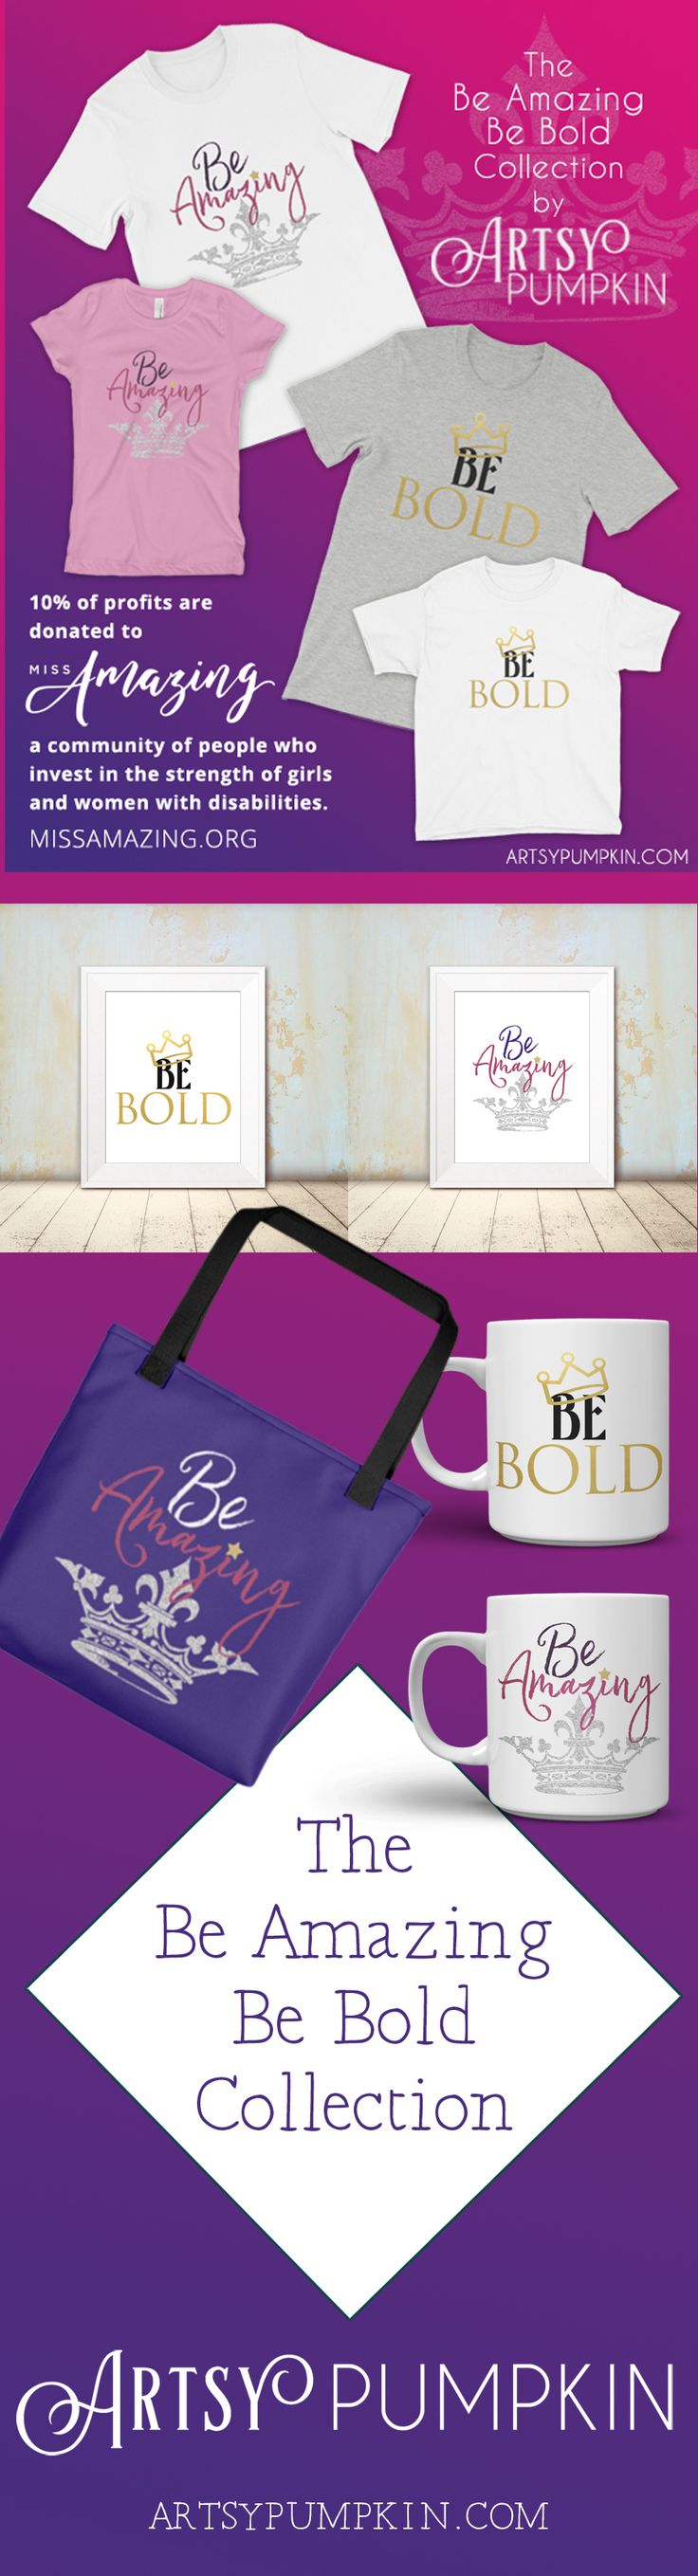 Artsy Pumpkin is donating 10% of the profits from the sale of the items in the Be Amazing Be Bold collection to the Miss Amazing organization.  A wonderful community of people that strive to help girls and women with disabilities have equal opportunities to reach their fullest potential.